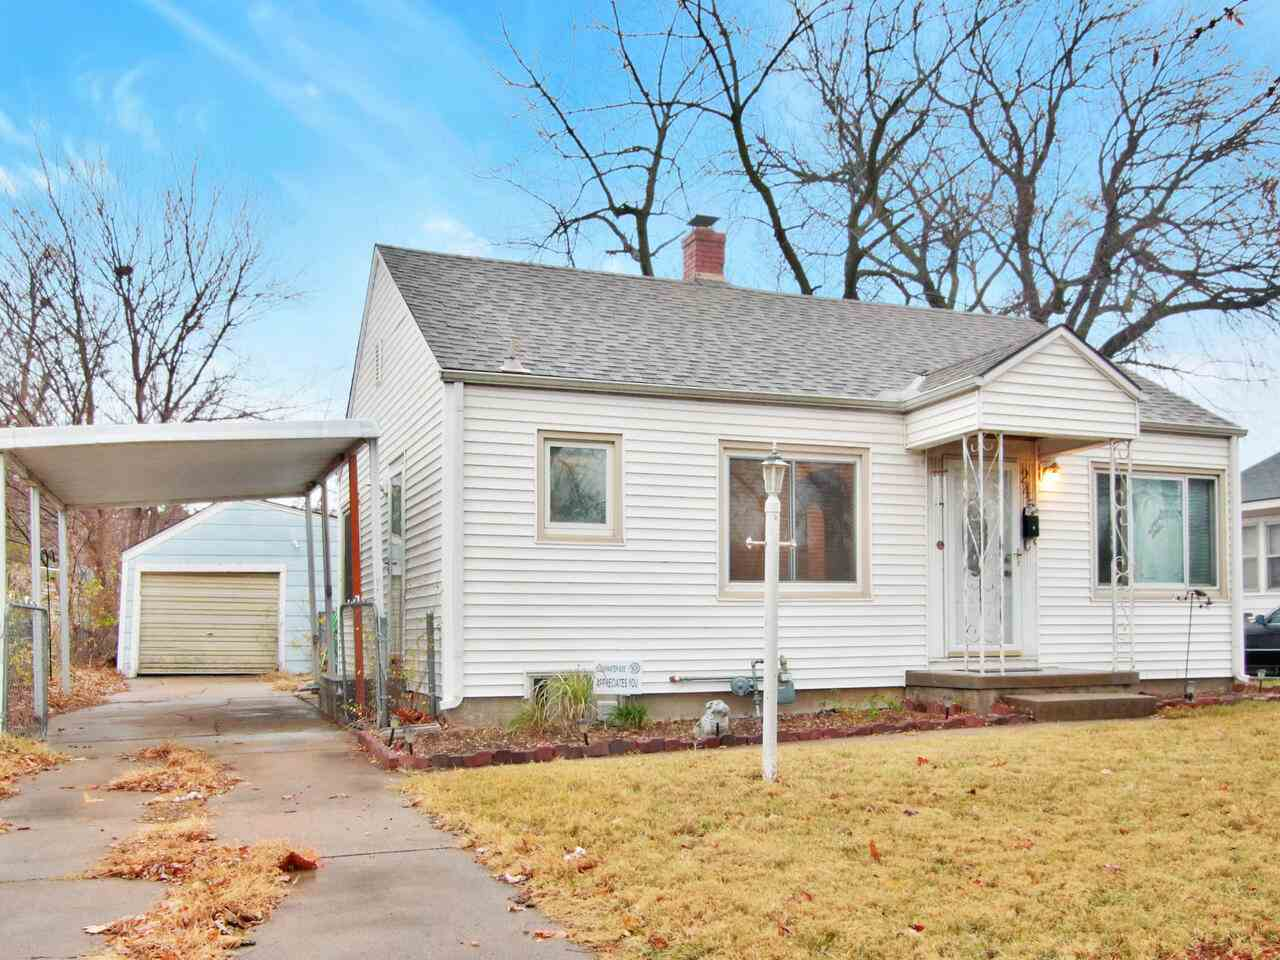 AFFORDABLE HOME WITH FAMILY ROOM IN BASEMENT AND ONE CAR GARAGE // PERMANENT SIDING // NEWER ROOF, W